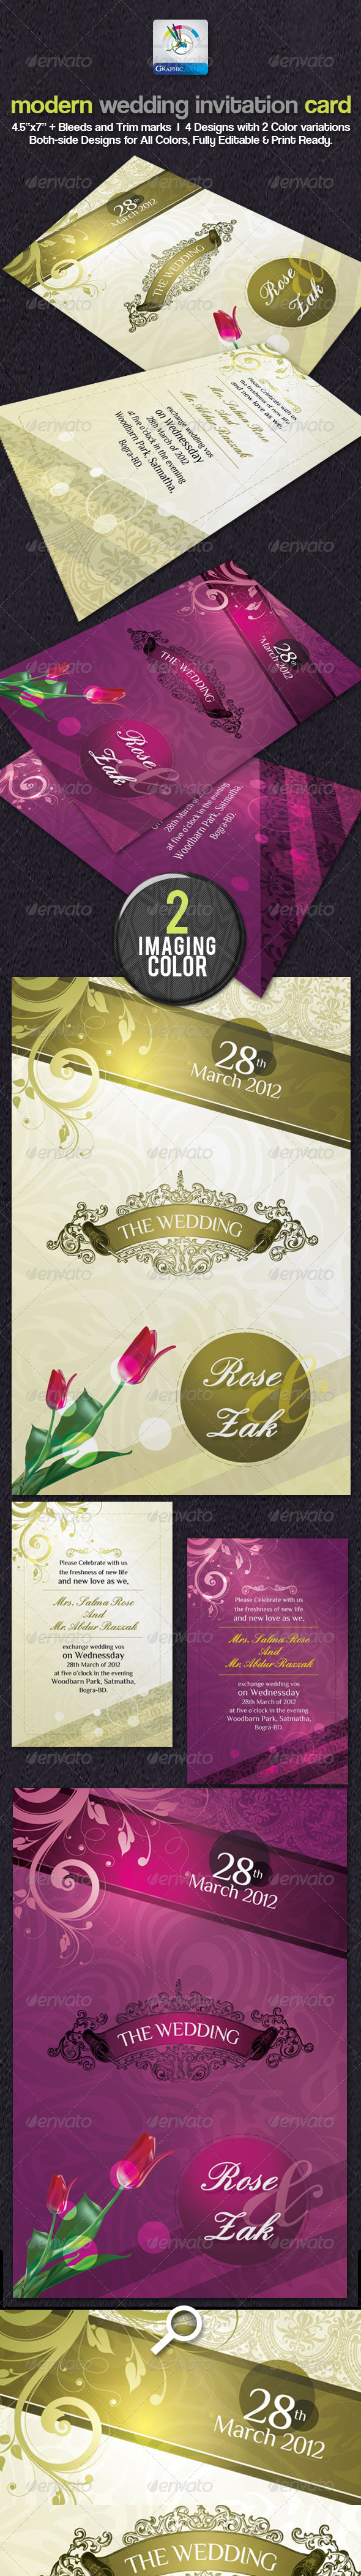 GraphicRiver Modern Wedding Invitation Cards 2393750